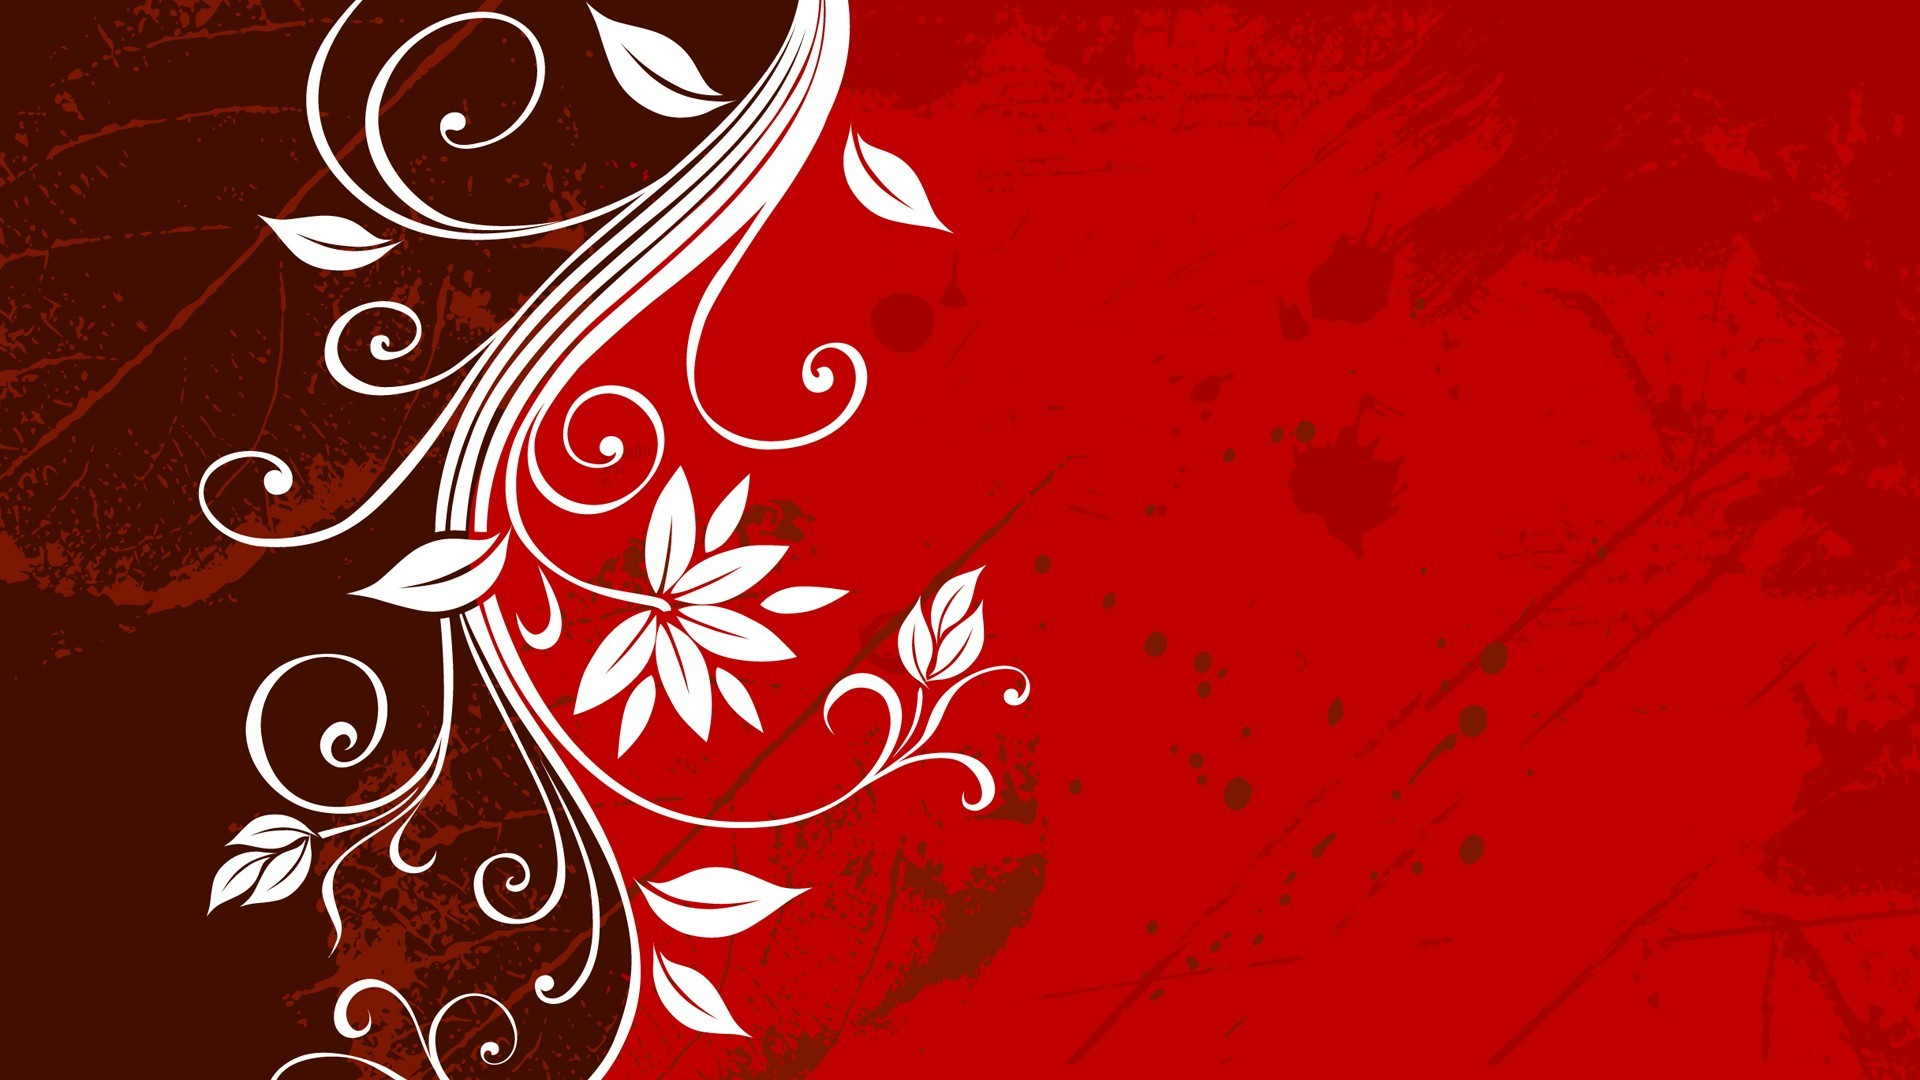 Red graphics jpg royalty free stock Graphics floral - ClipartFest jpg royalty free stock